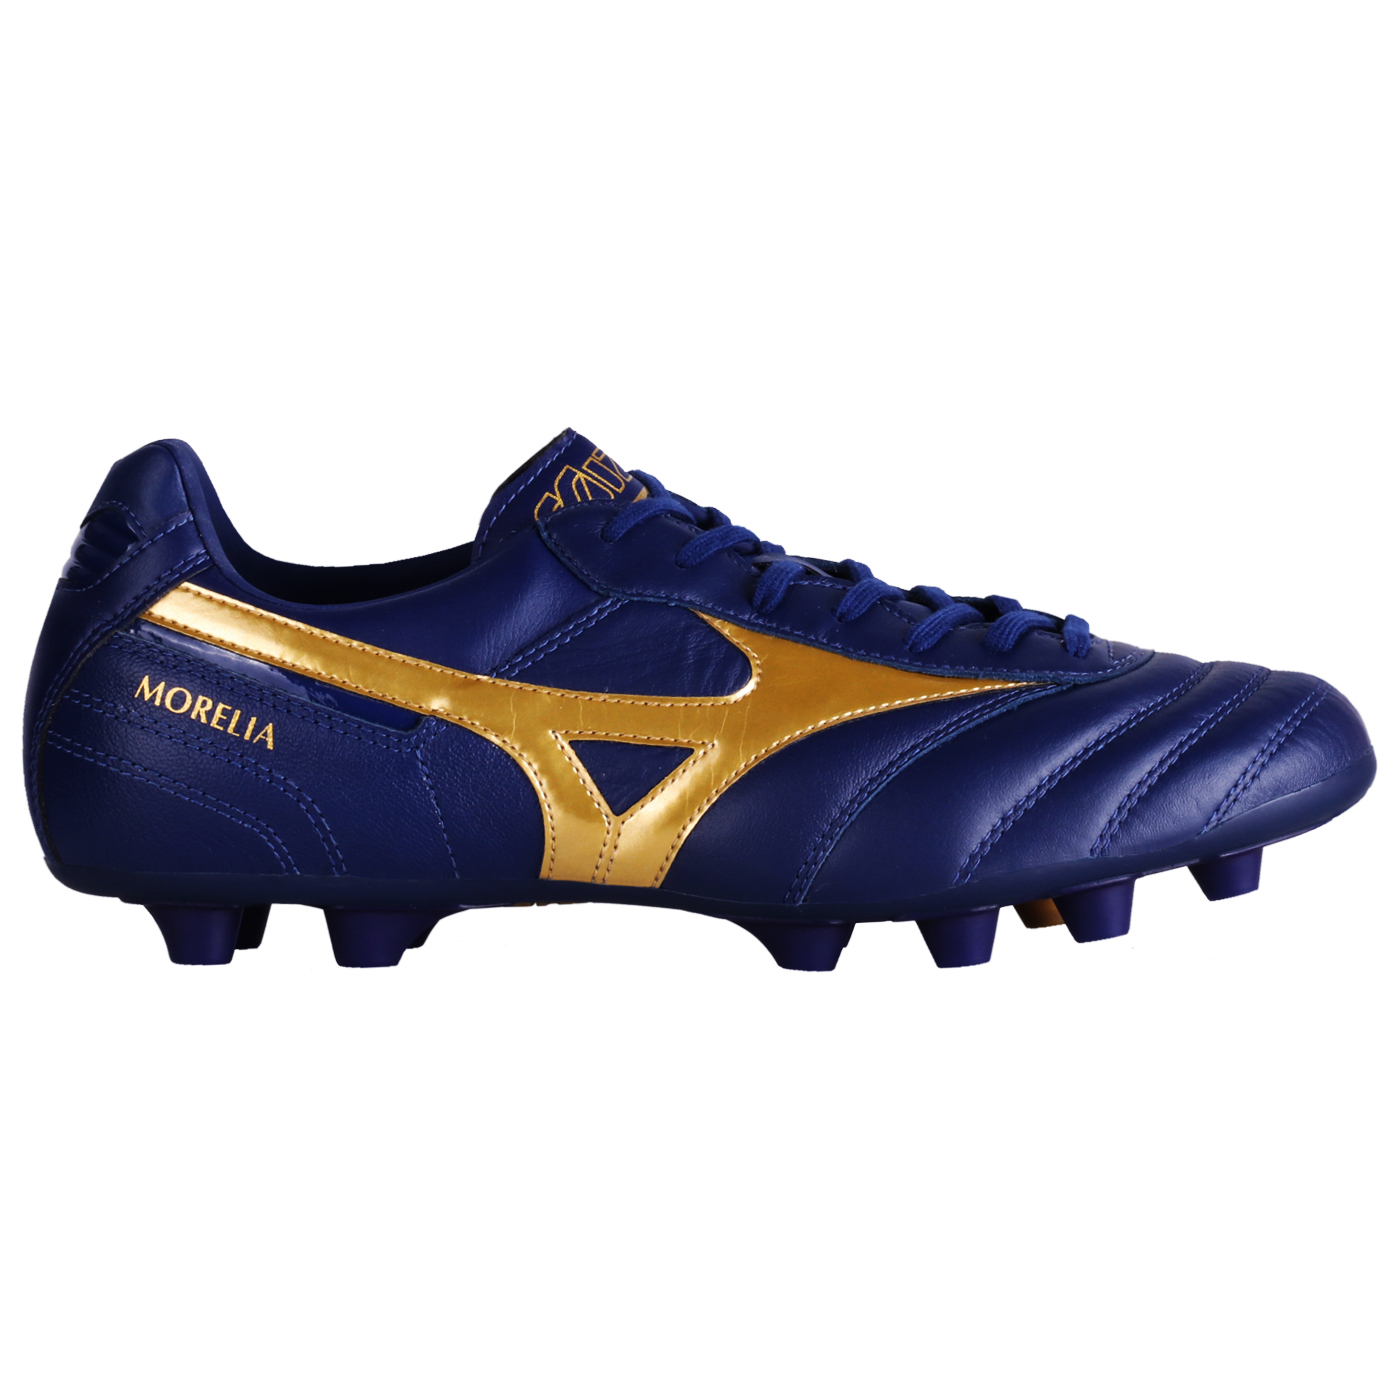 MORELIA II MD - BLUE DEPTHS /GOLD